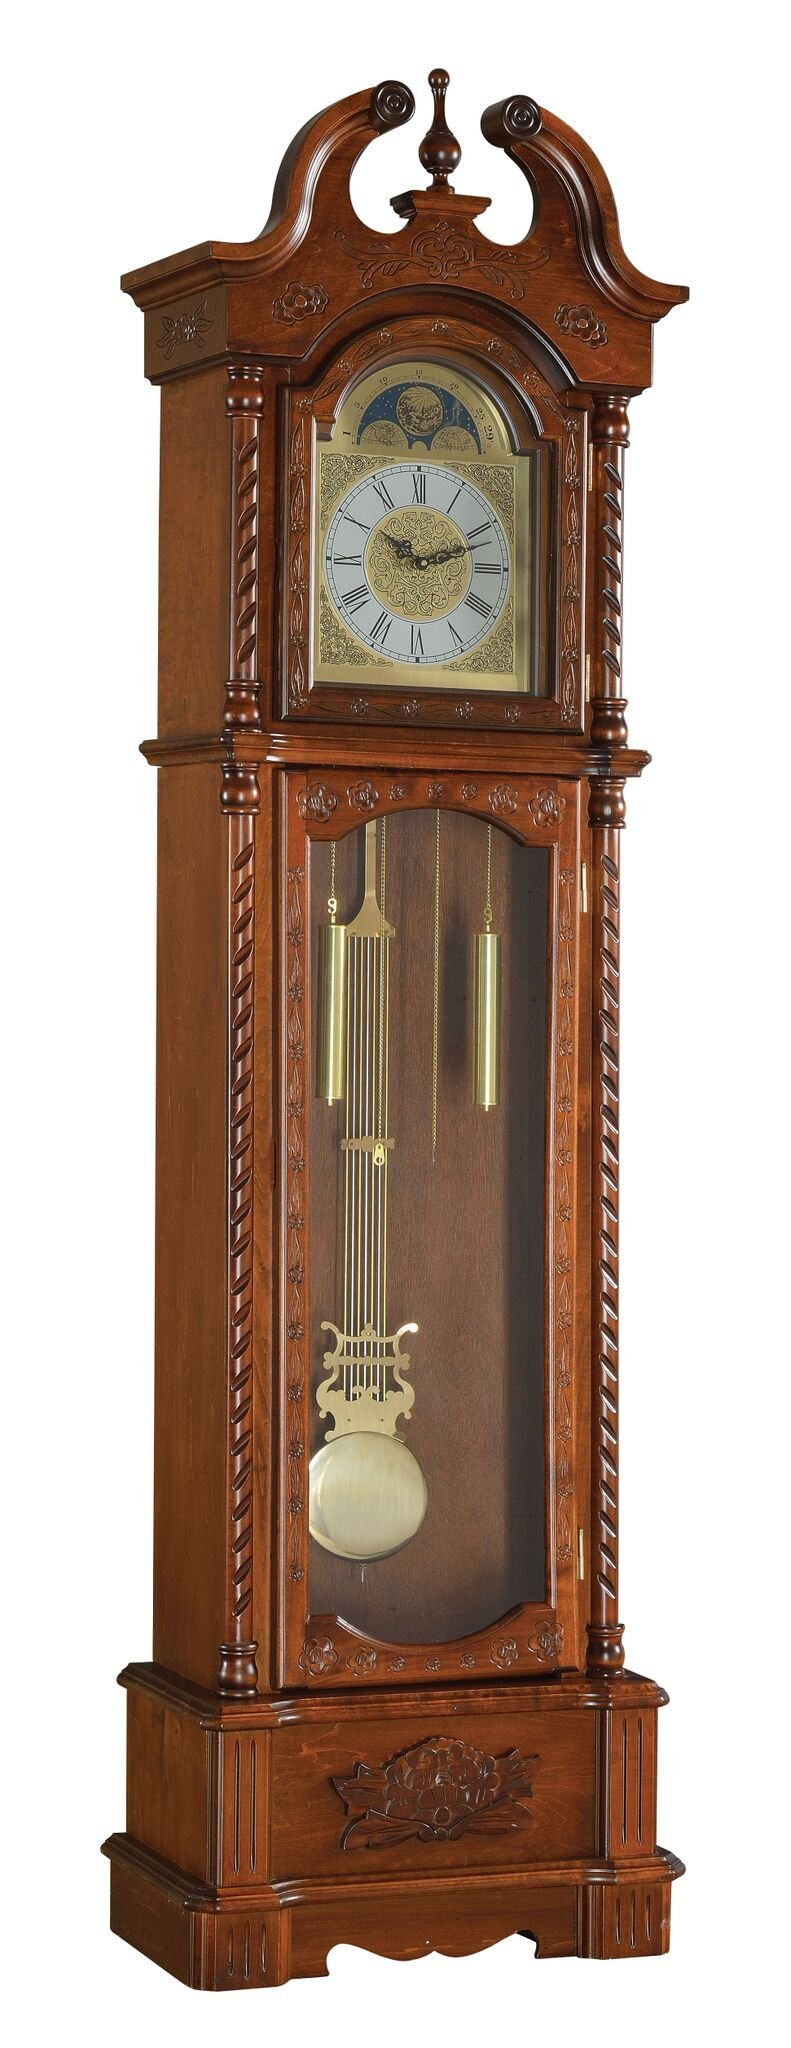 Major-Q 9097085 82'' H Traditional Style Dark Oak Finish Grandfather Floor Clock with Movement Pendulum Included by Major-Q